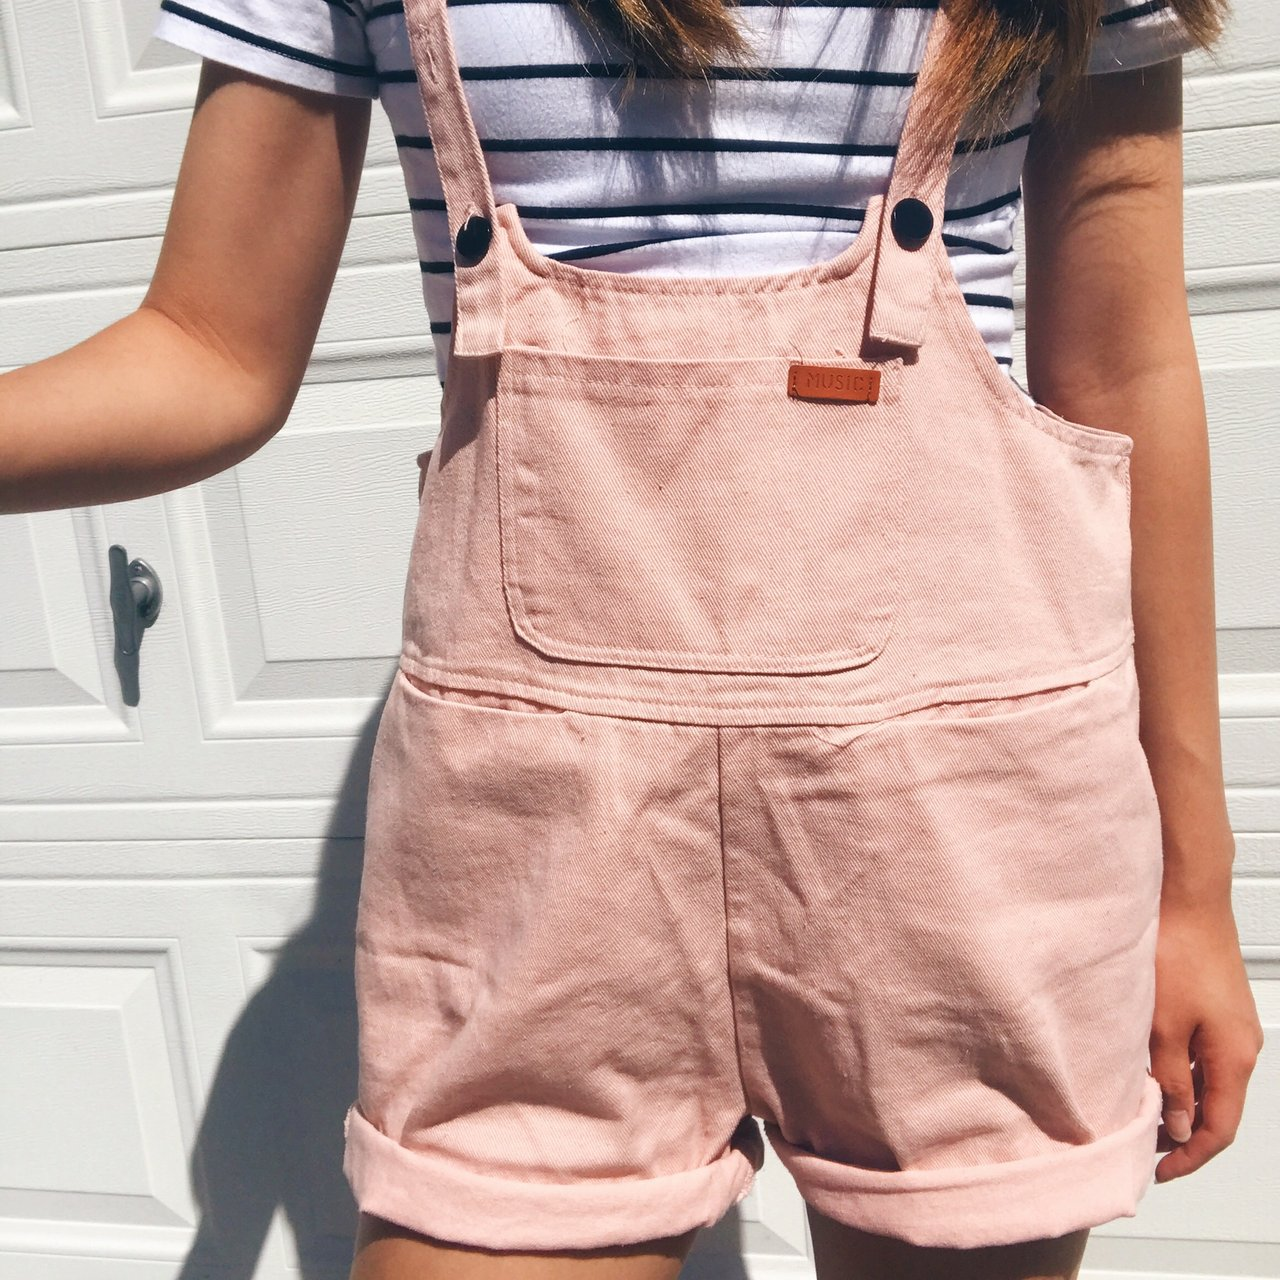 dff1d69000 Princess Polly Pink Sloan Denim Overalls Brand new with and - Depop